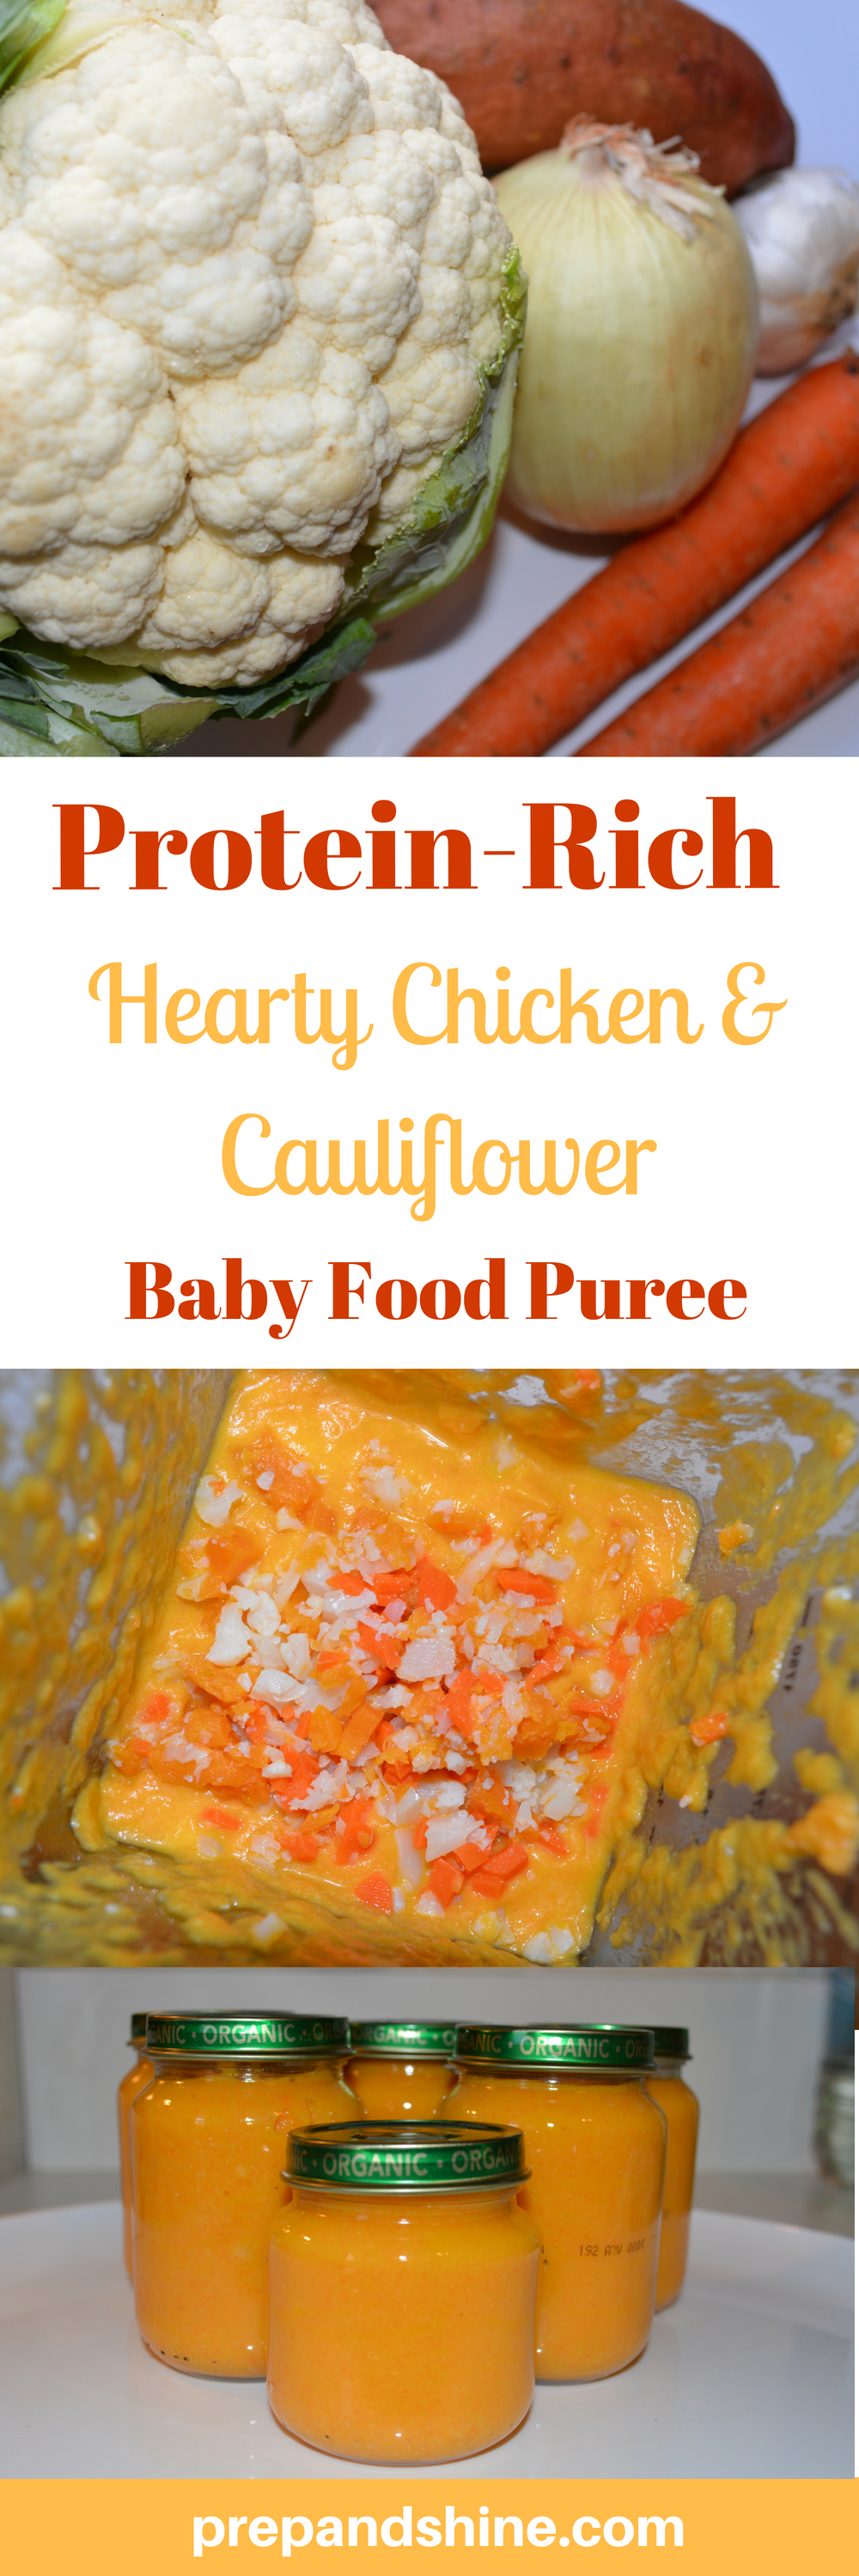 Homemade baby food recipe hearty chicken cauliflower puree prep homemade baby food hearty chicken and cauliflower puree 1 forumfinder Image collections